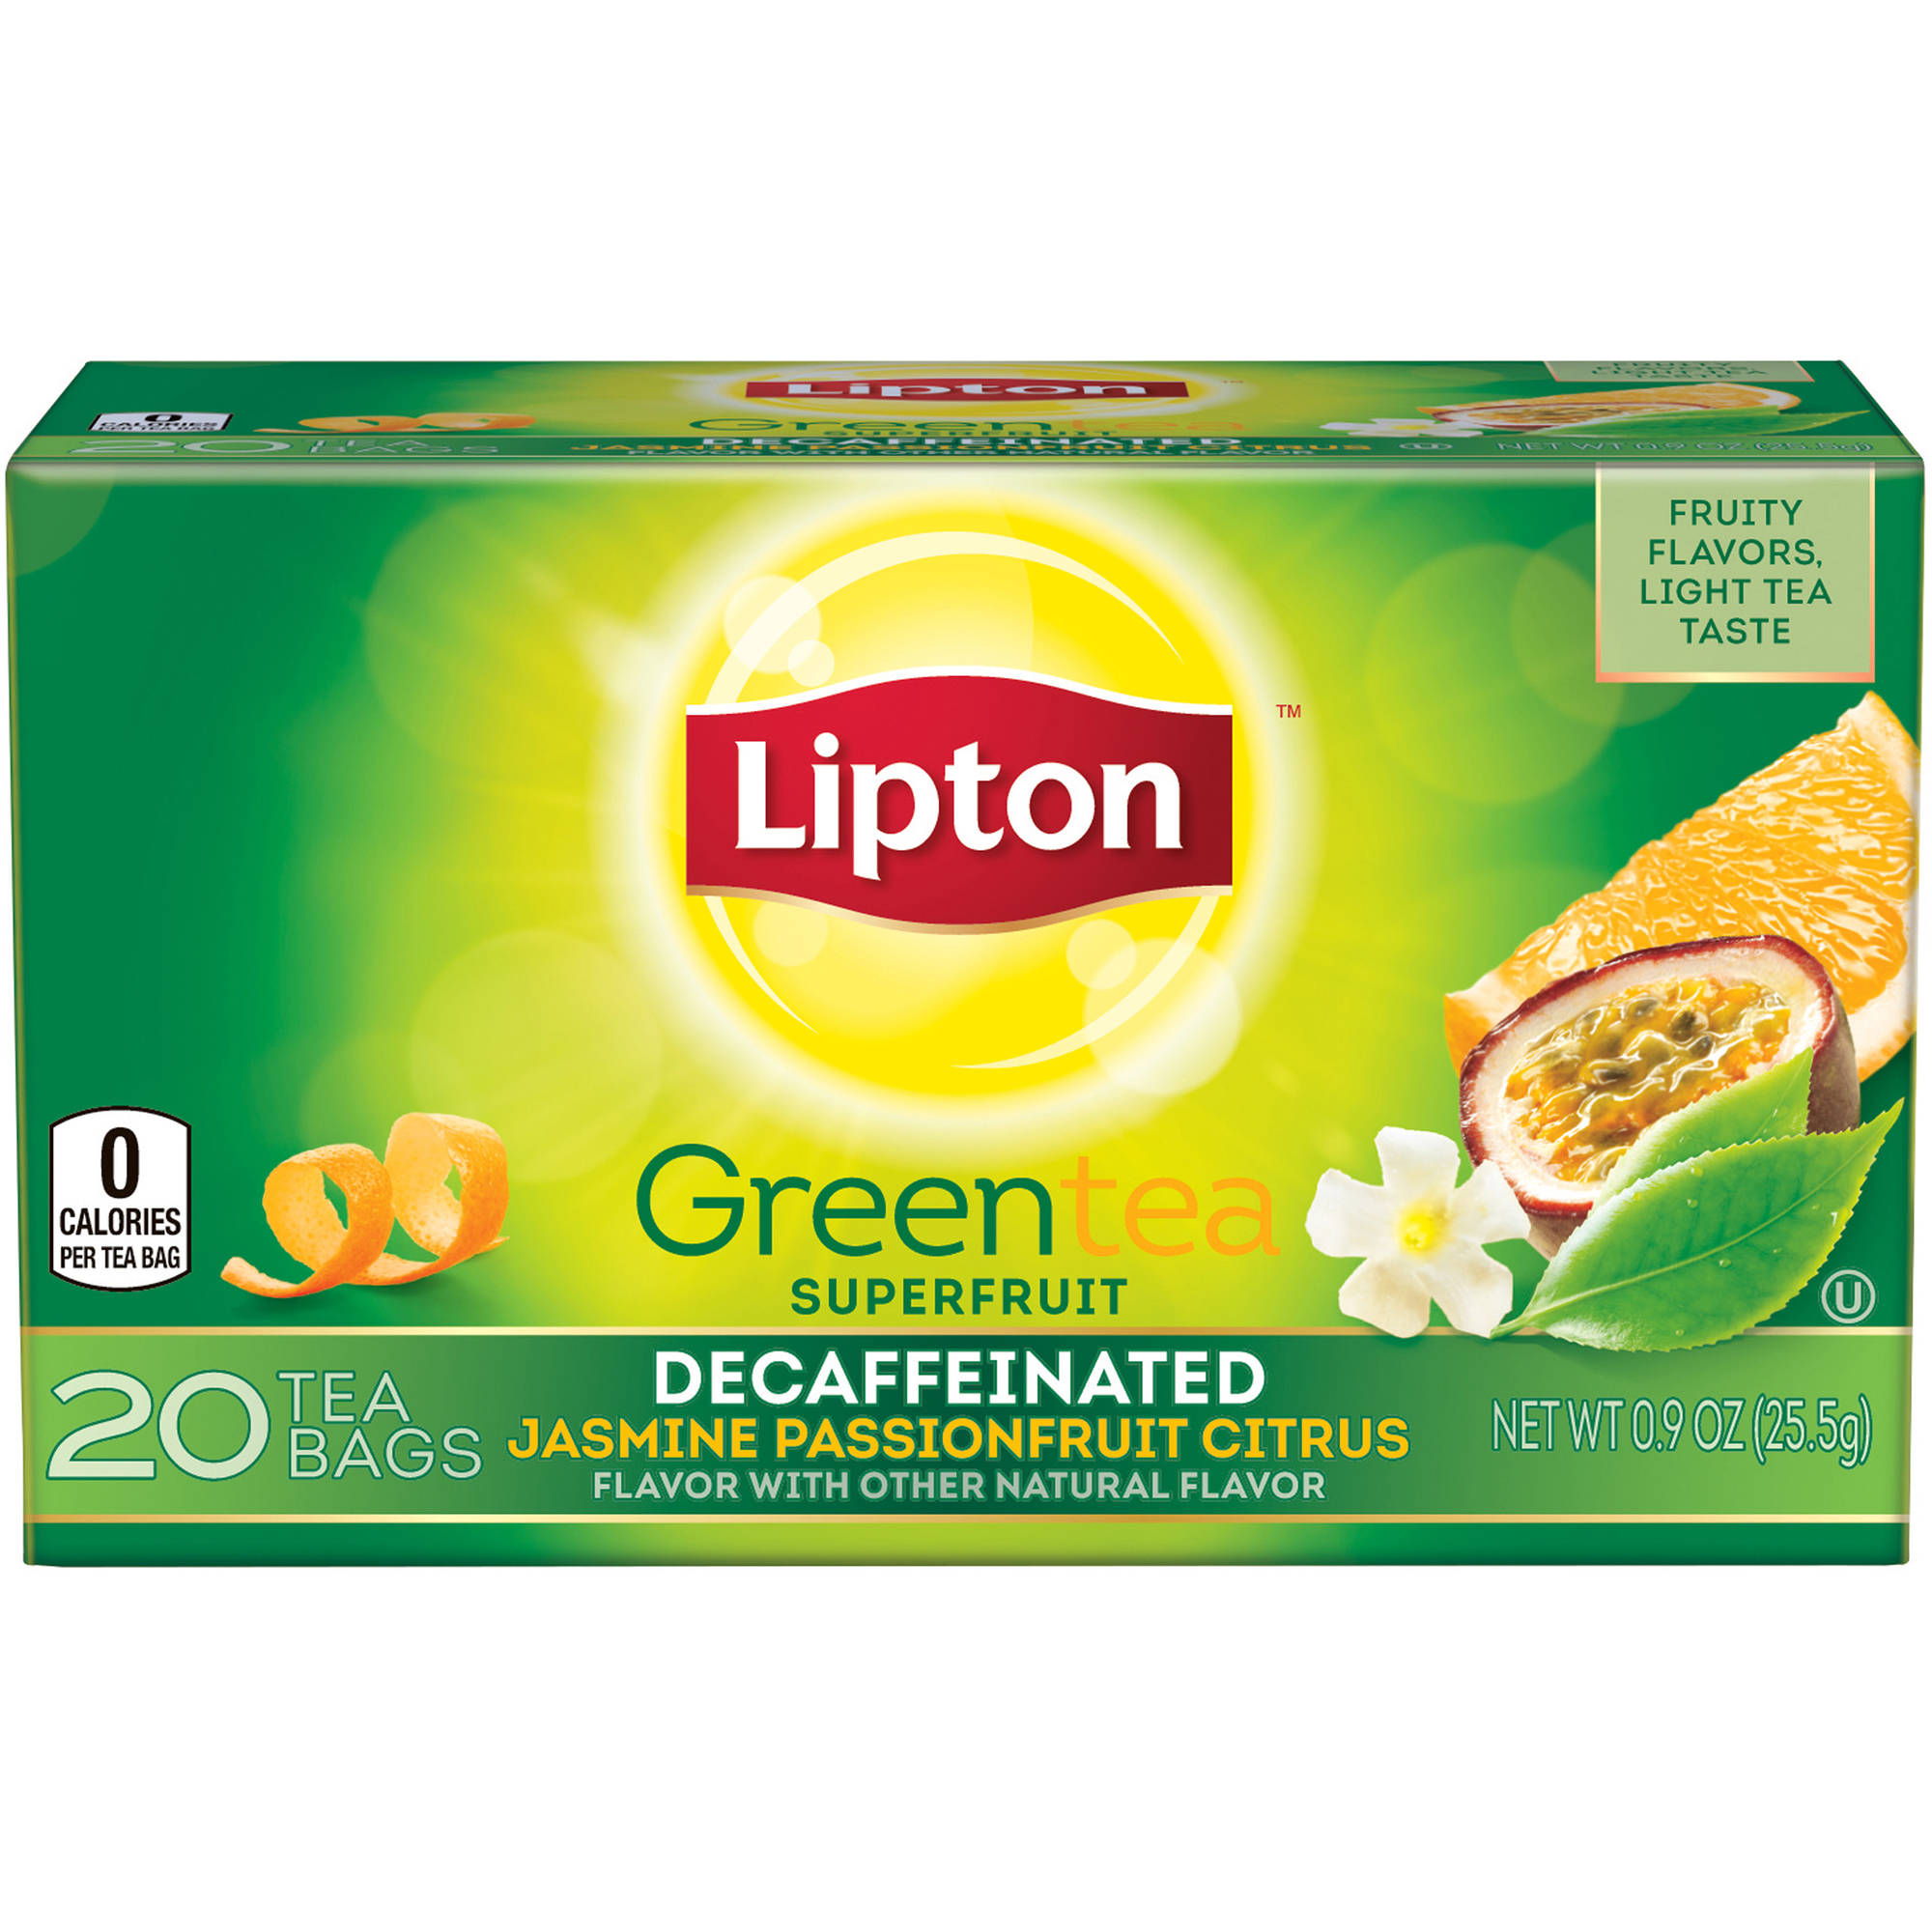 Lipton Decaffeinated Jasmine Passionfruit with Citrus Green Tea Bags, 20 ct